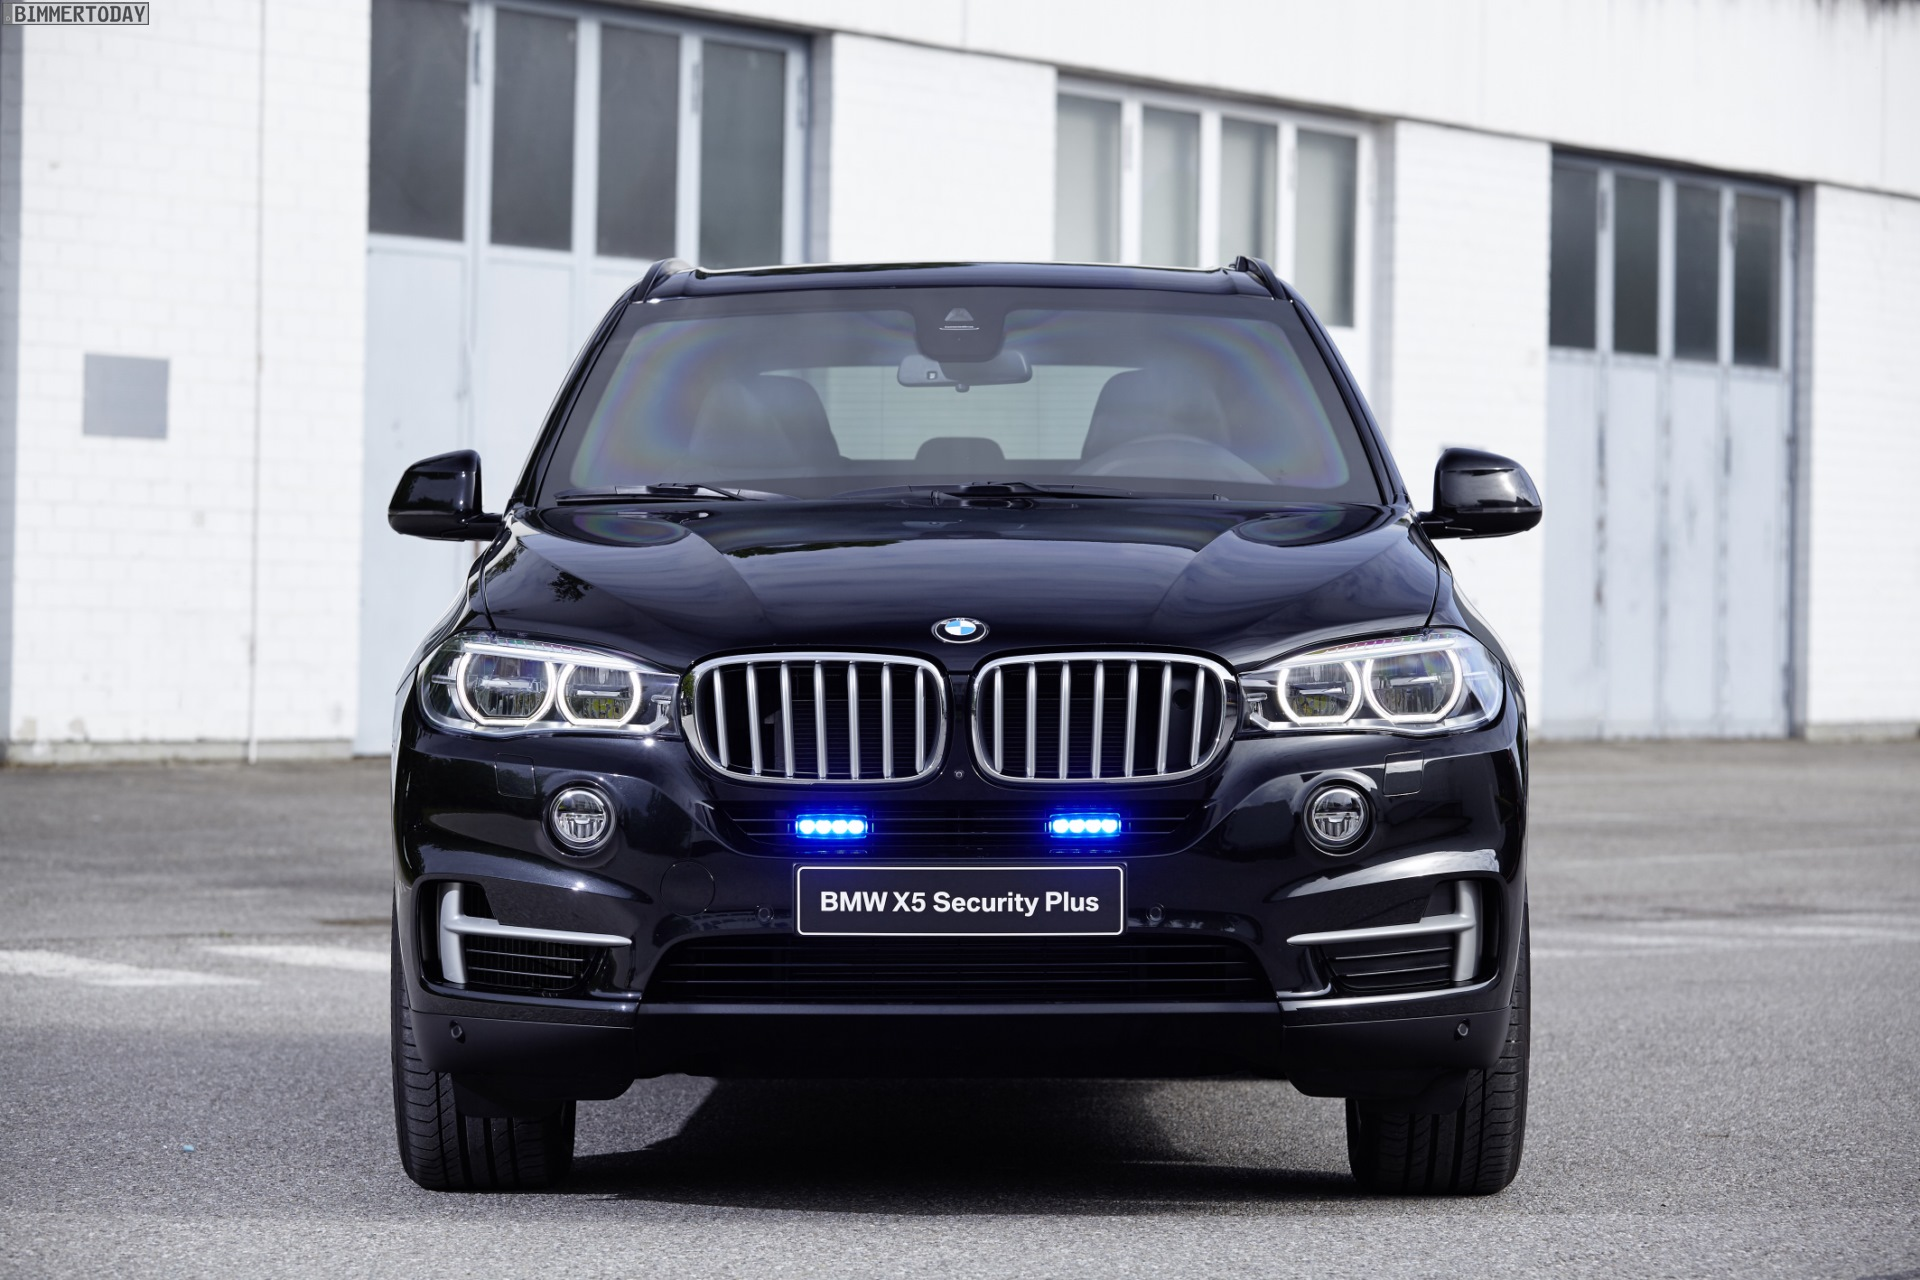 bmw x5 security plus shown at gpec 2016 in leipzig. Black Bedroom Furniture Sets. Home Design Ideas